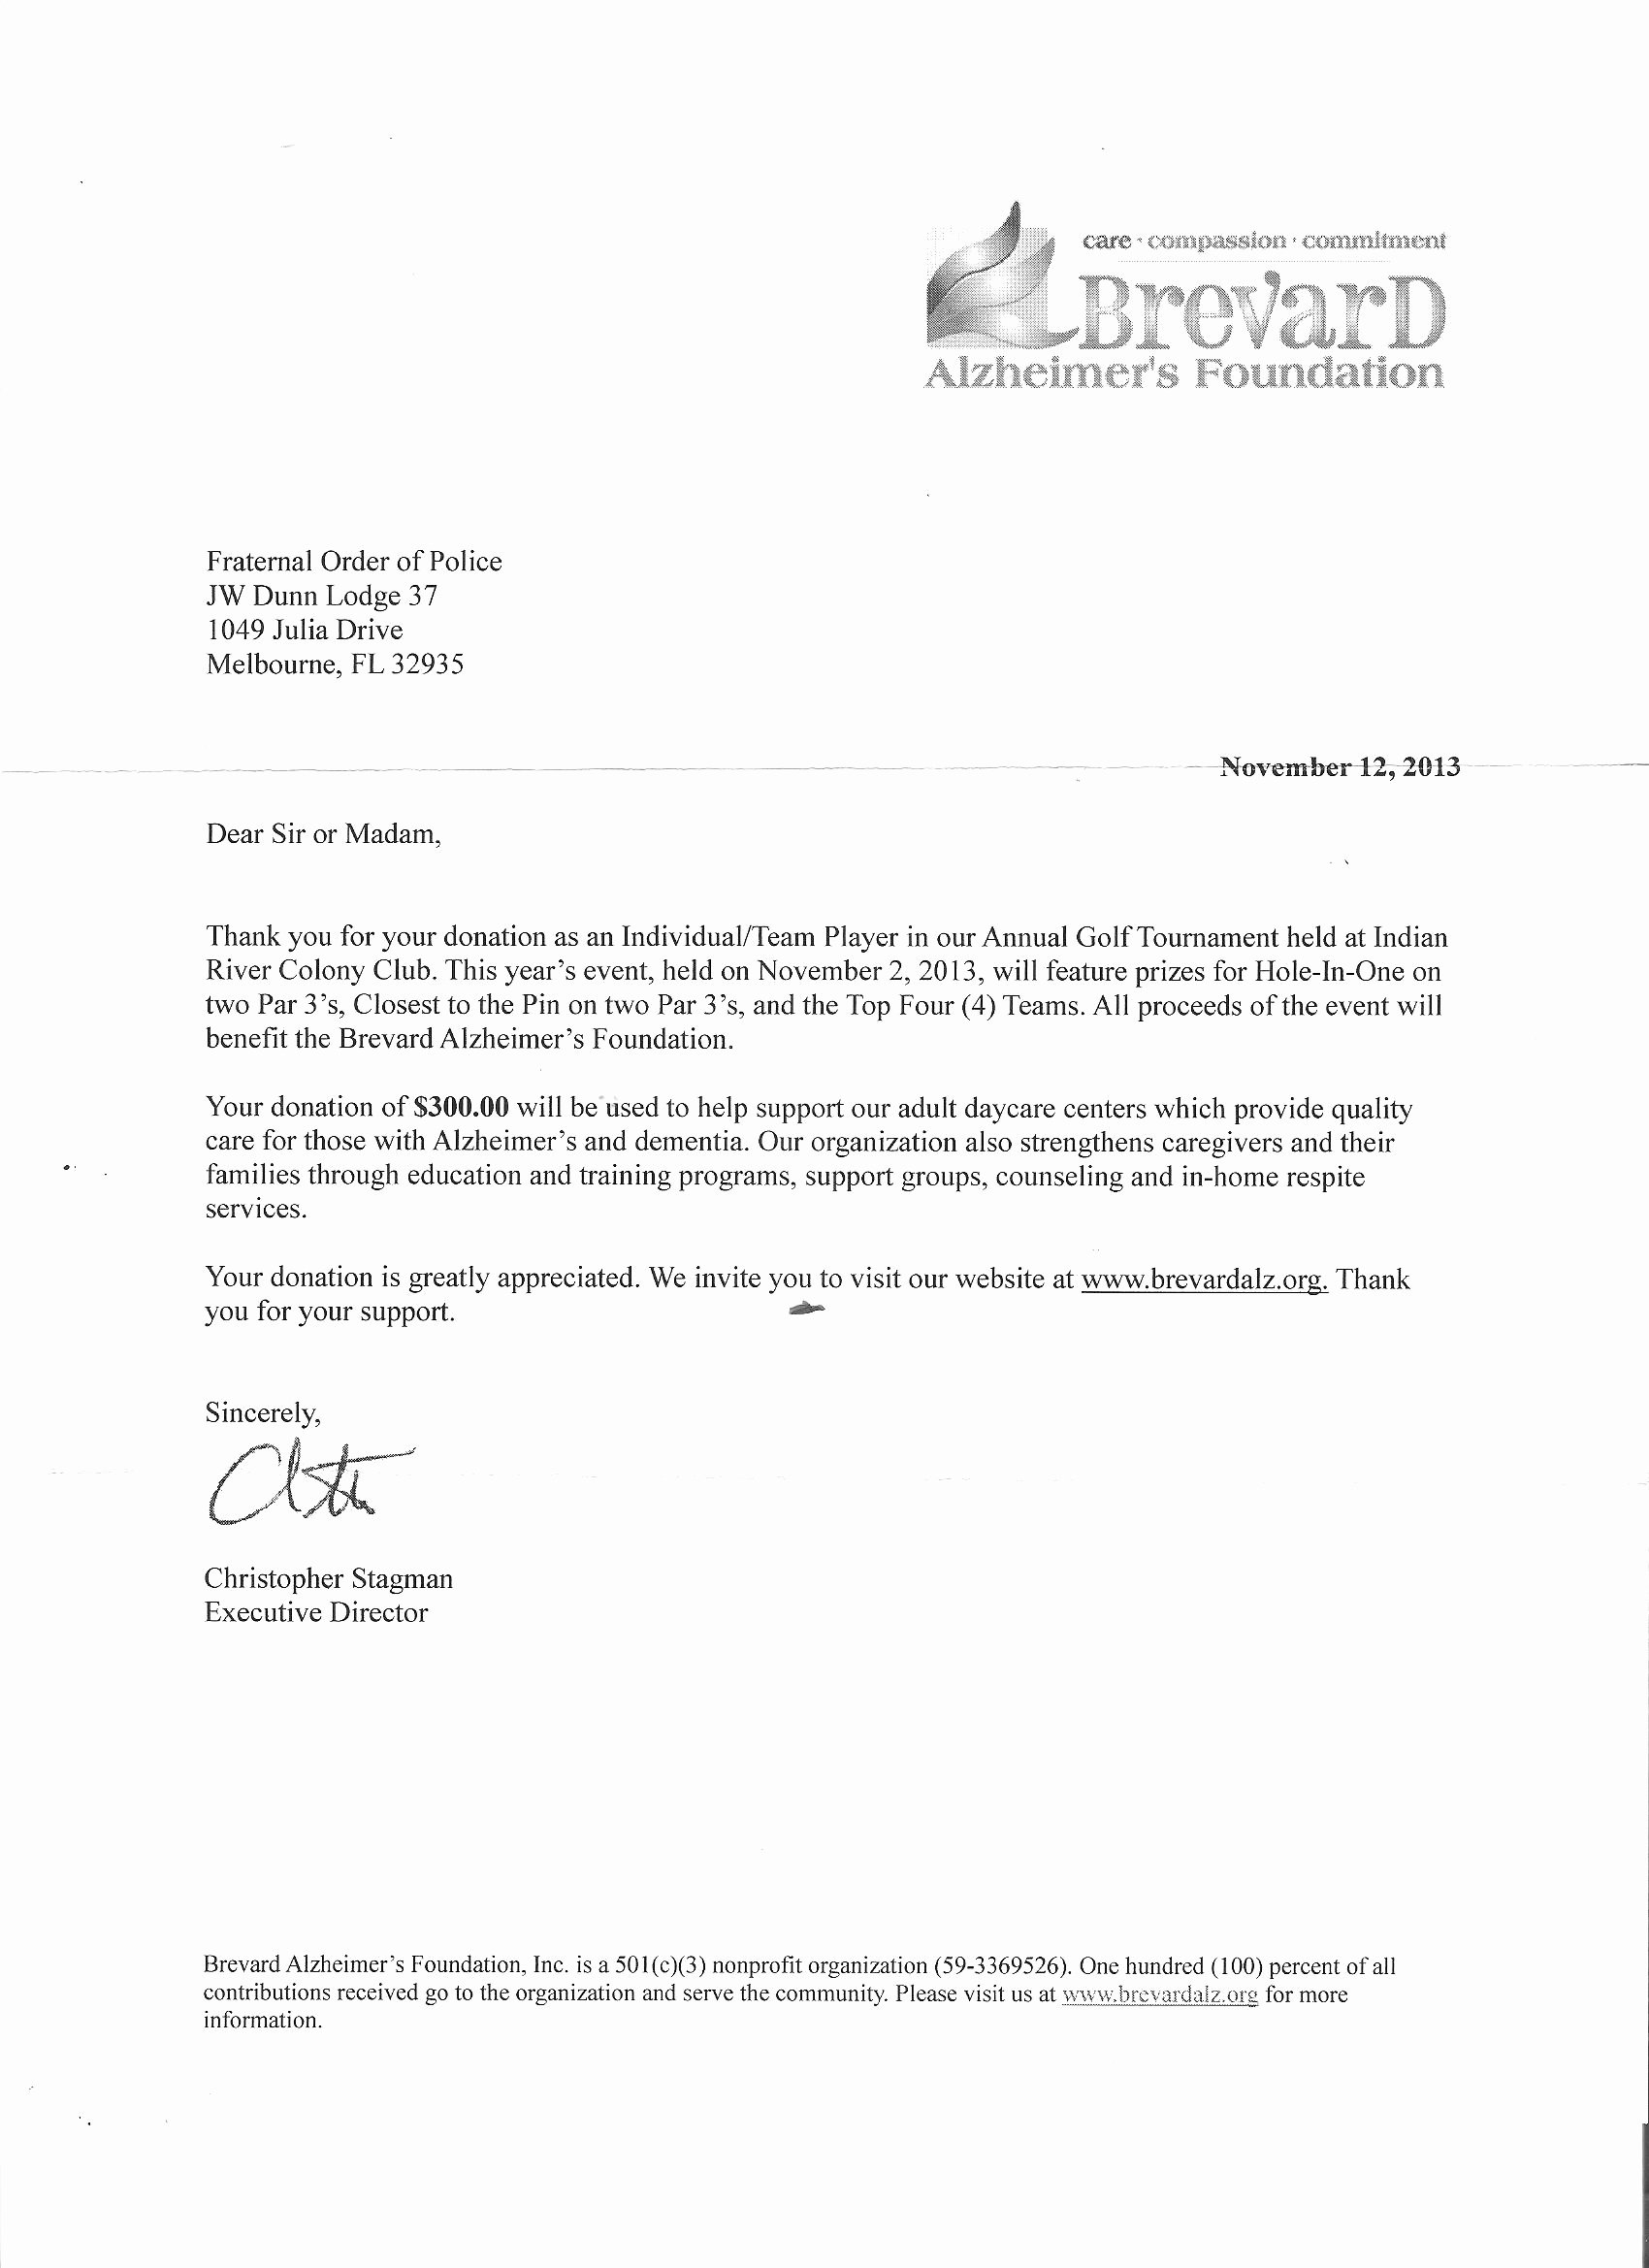 Donation Thank You Letter Template Awesome Golf tournament Donation Letter Template Samples